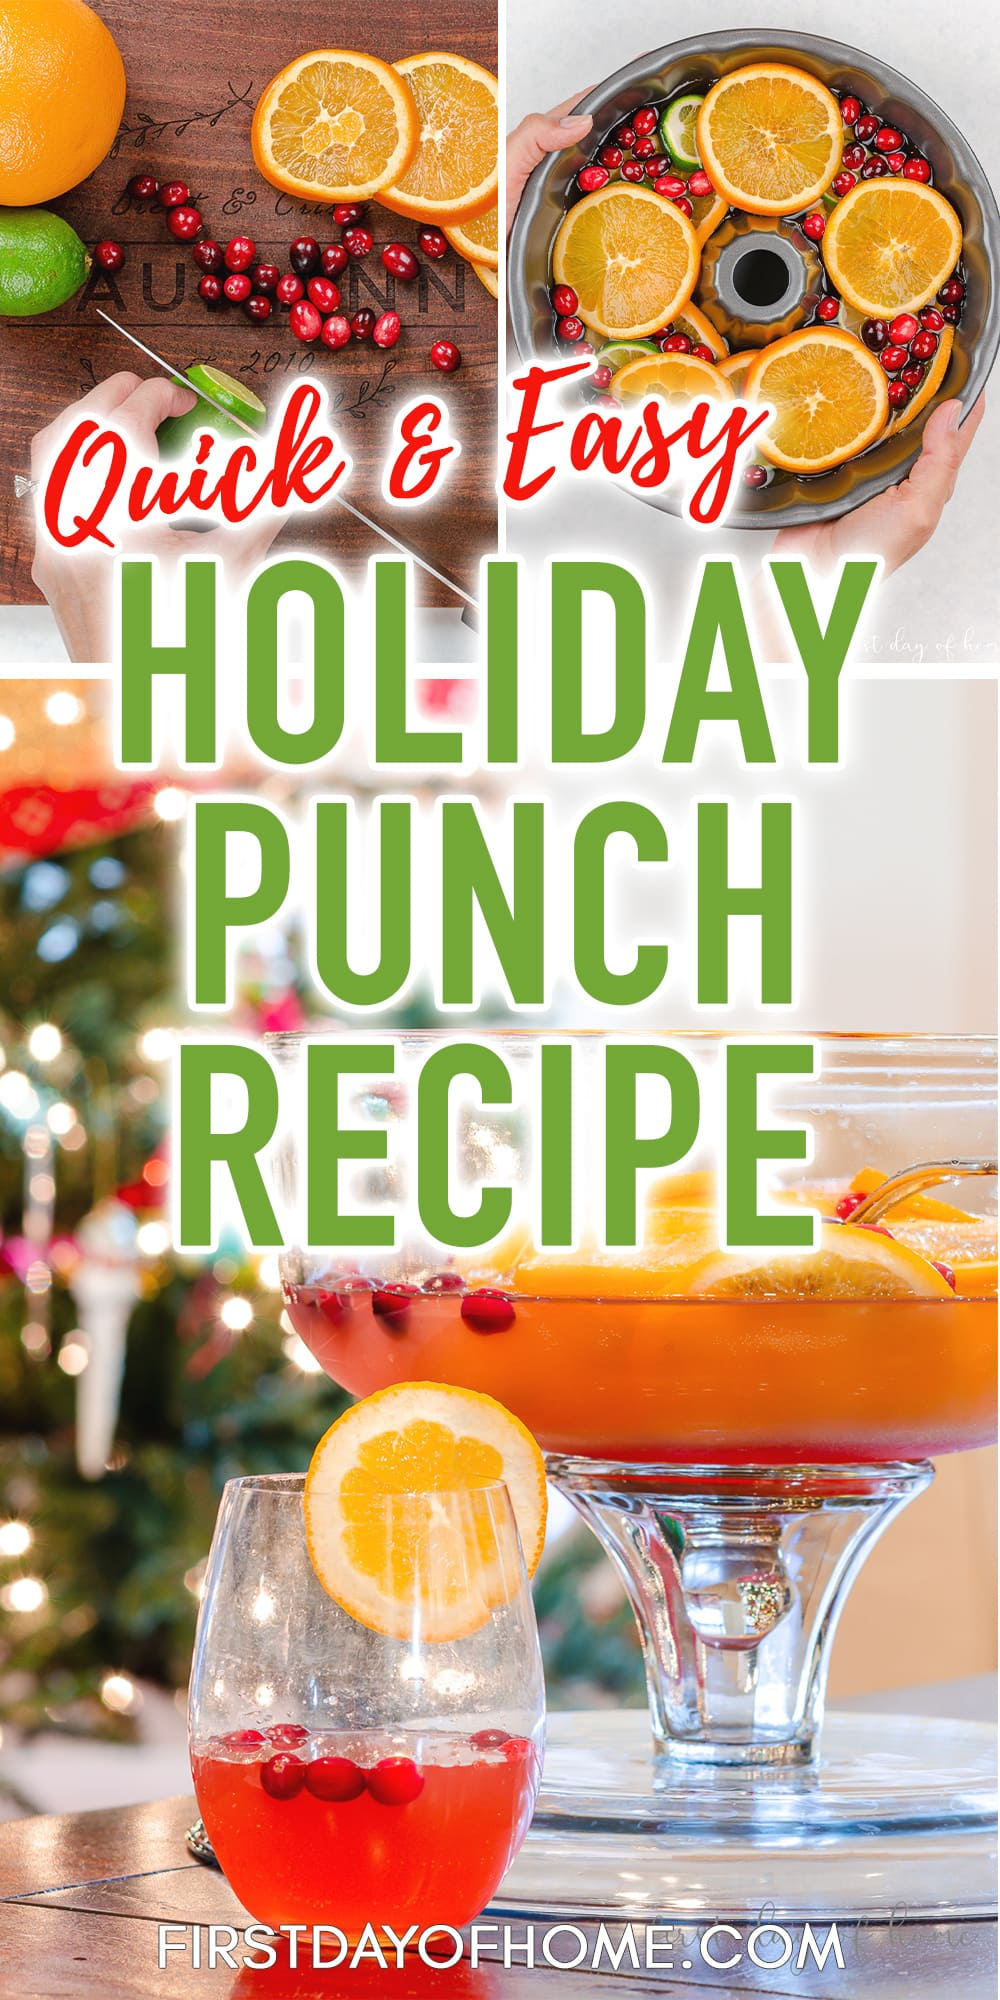 "Image of Christmas punch steps and final punch with glass, including text overlay saying ""Quick & Easy Holiday Punch Recipe"""